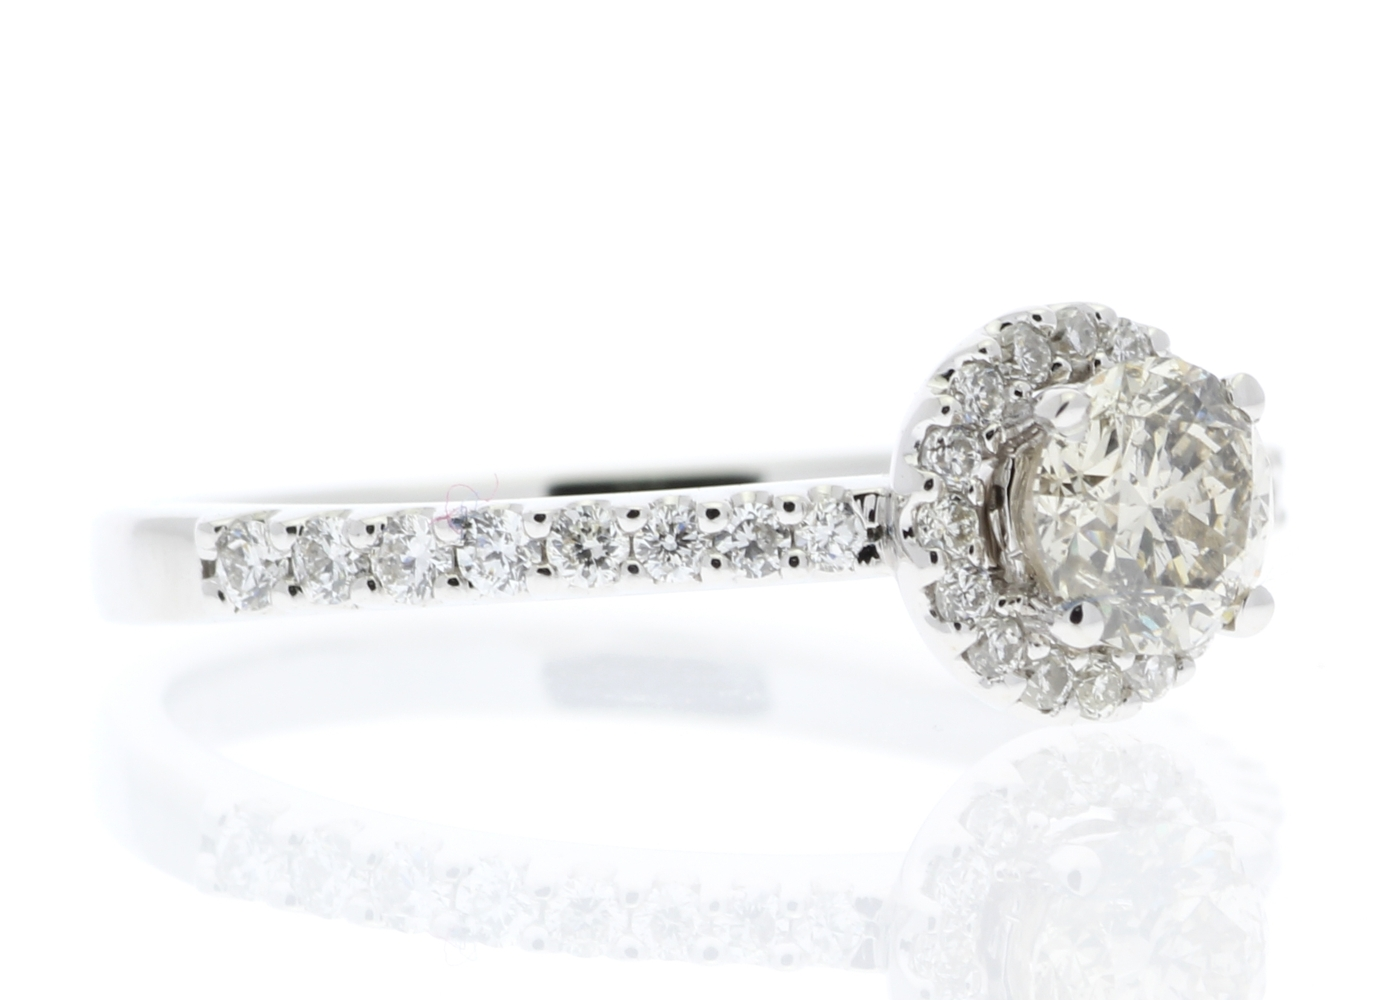 Lot 21 - 18ct White Gold Single Stone Halo Set With Stone Set Shoulders Diamond Ring (0.25) 0.52 Carats